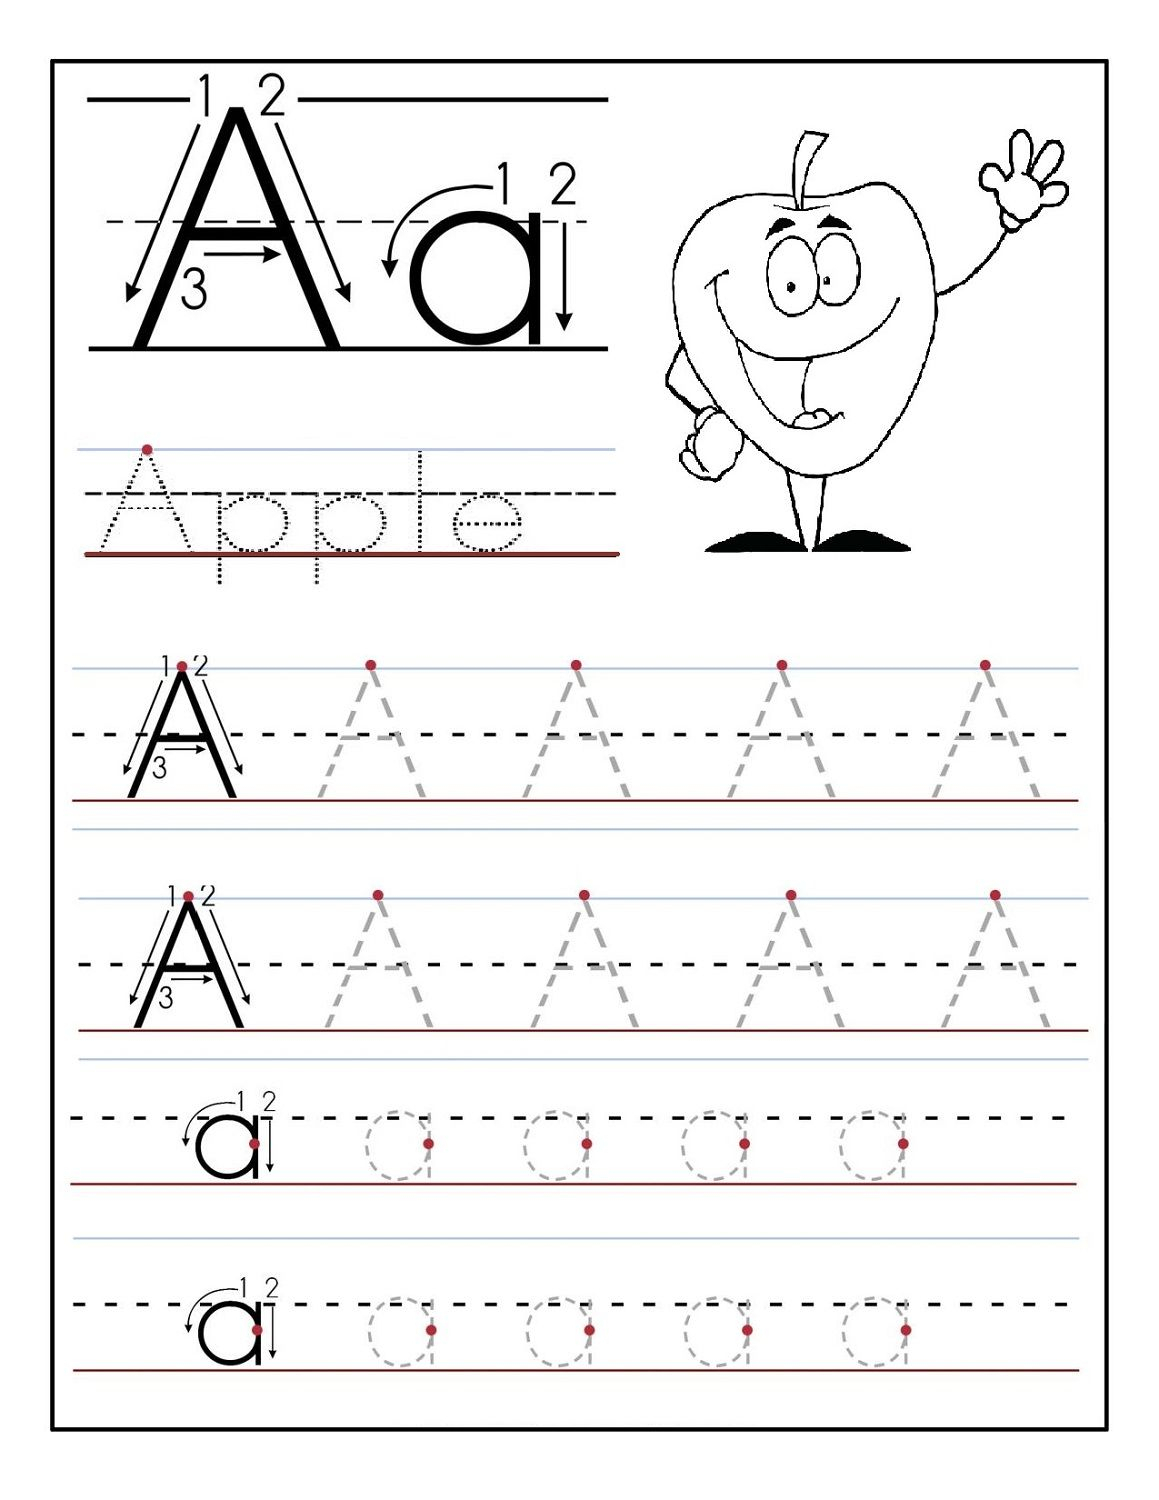 Trace Letter A Sheets To Print | Printable Preschool for Tracing Letter A Worksheets For Preschool